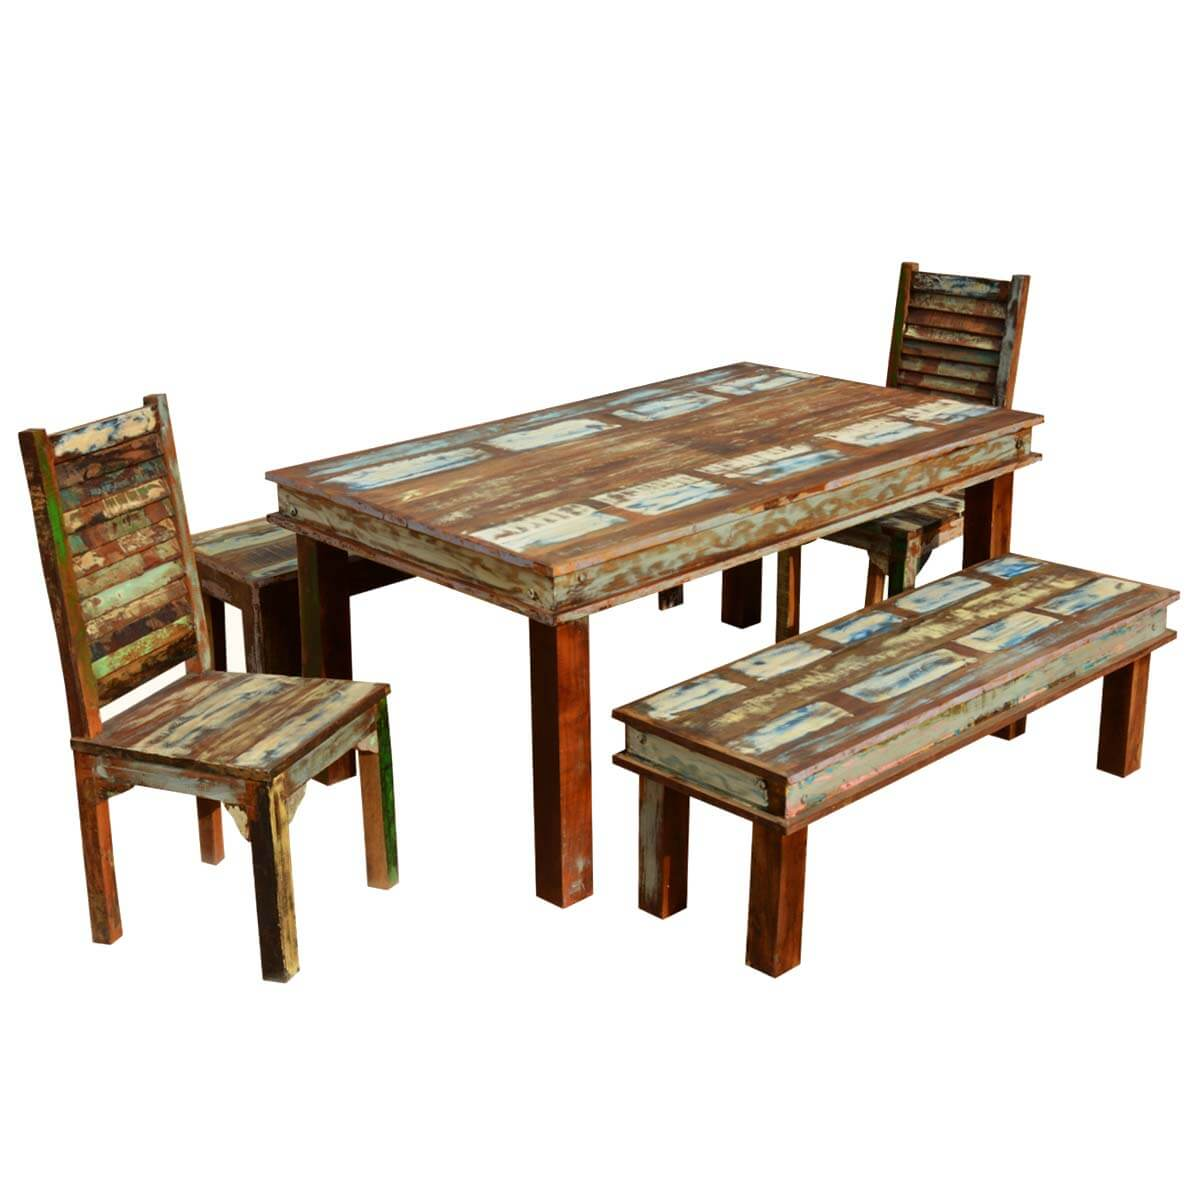 Reclaimed Wood Table ~ Sierra reclaimed wood furniture dining table with chairs